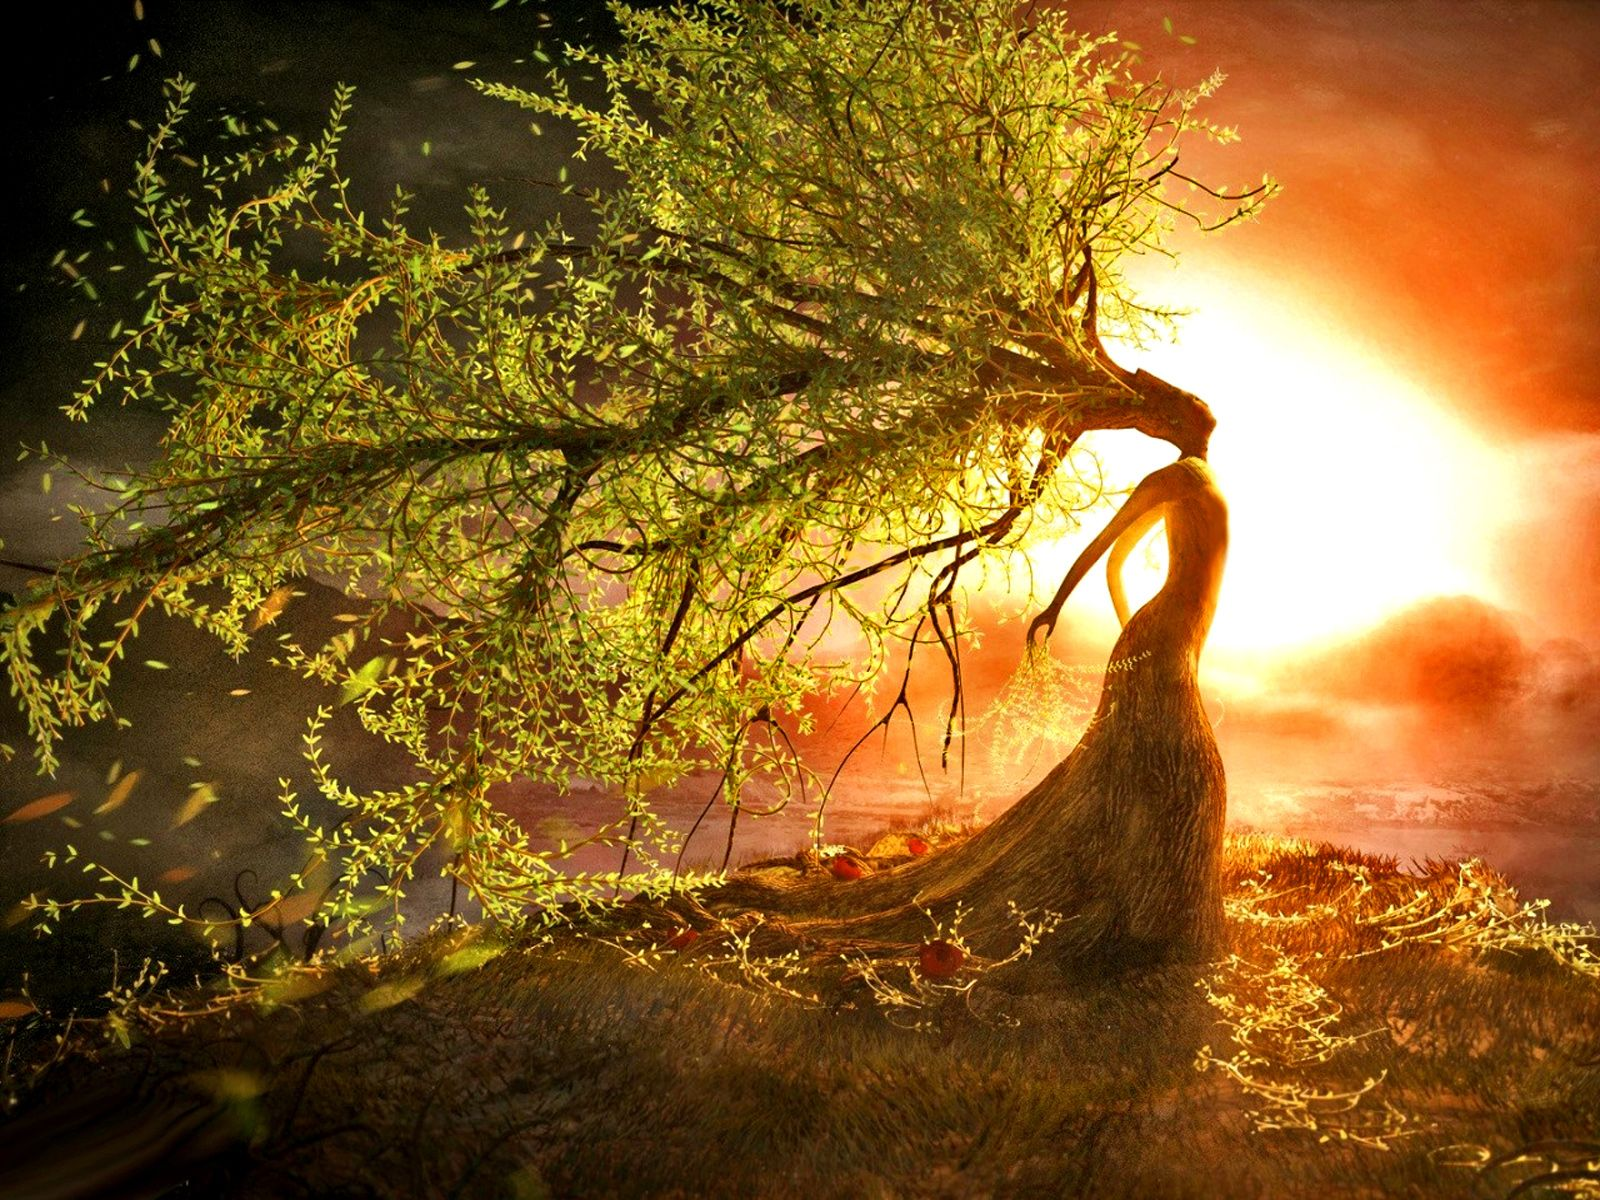 Goddess of tree art wallpapers hi Goddess of nature greek